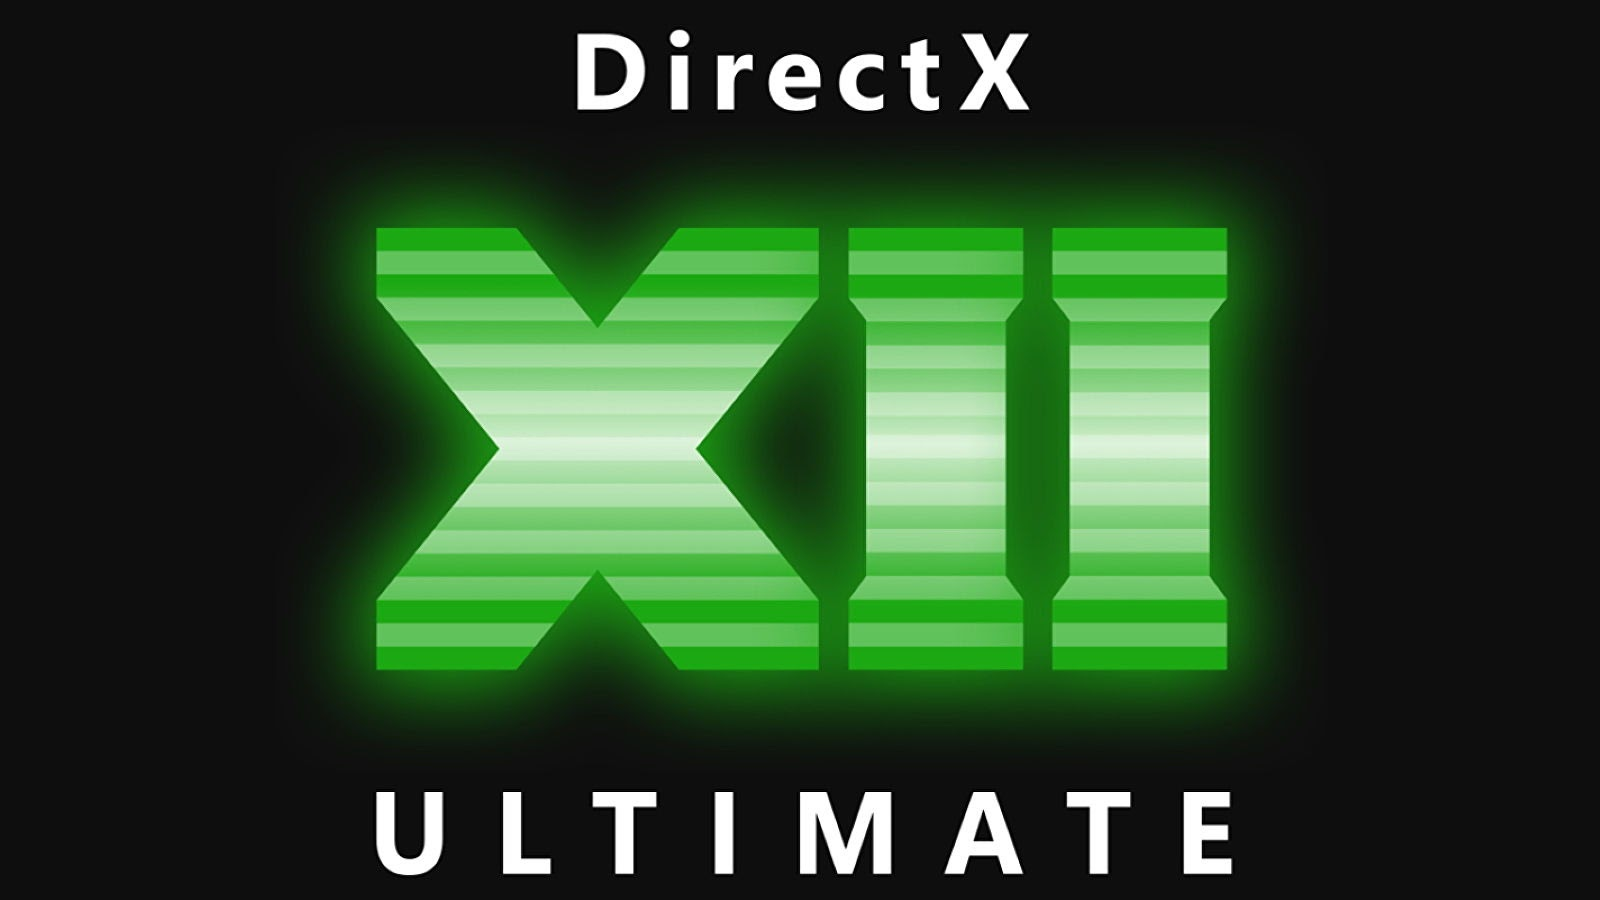 Update DirectX in Windows 10 - correct methods of updating - DirectX and Gaming